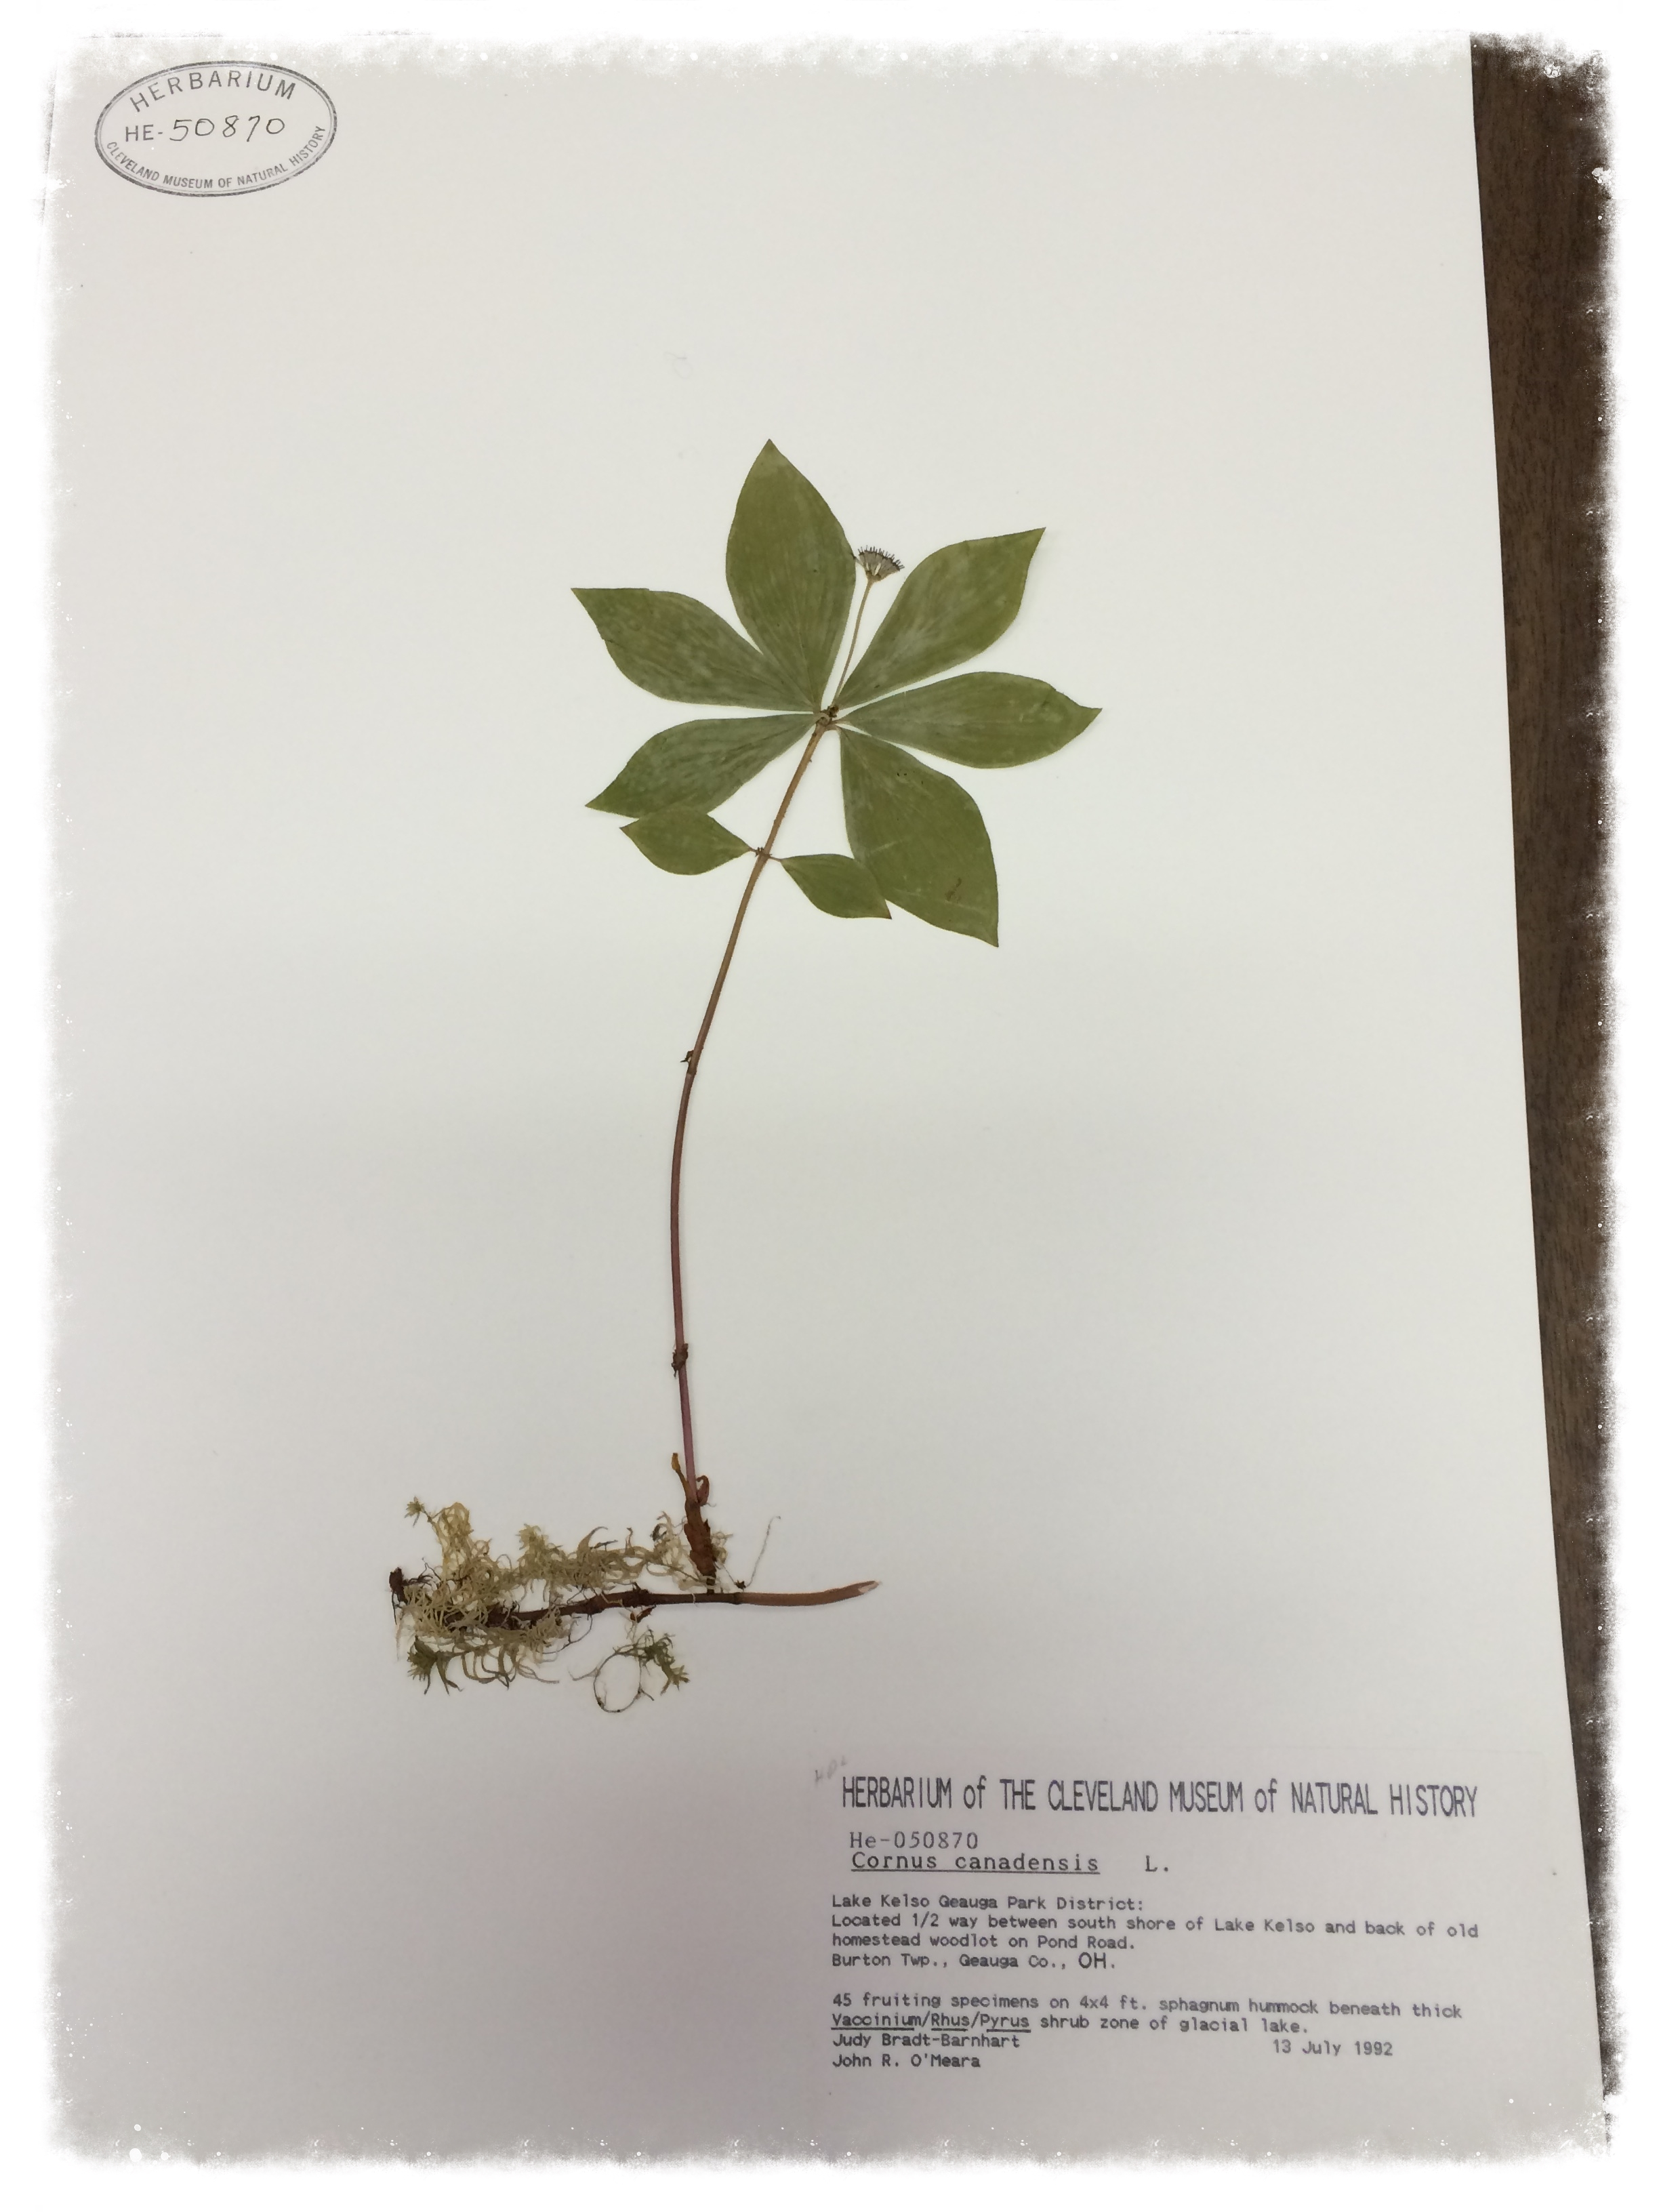 Cornus canadensis , bunchberry dogwood, specimen collected by Judy Bradt-Barnhart during her work with Geauga Park District. Close-ups of   C. canadensis  specimen  and  label .   Courtesy of The Cleveland Museum of Natural History, Trish Fox, Herbarium Coordinator